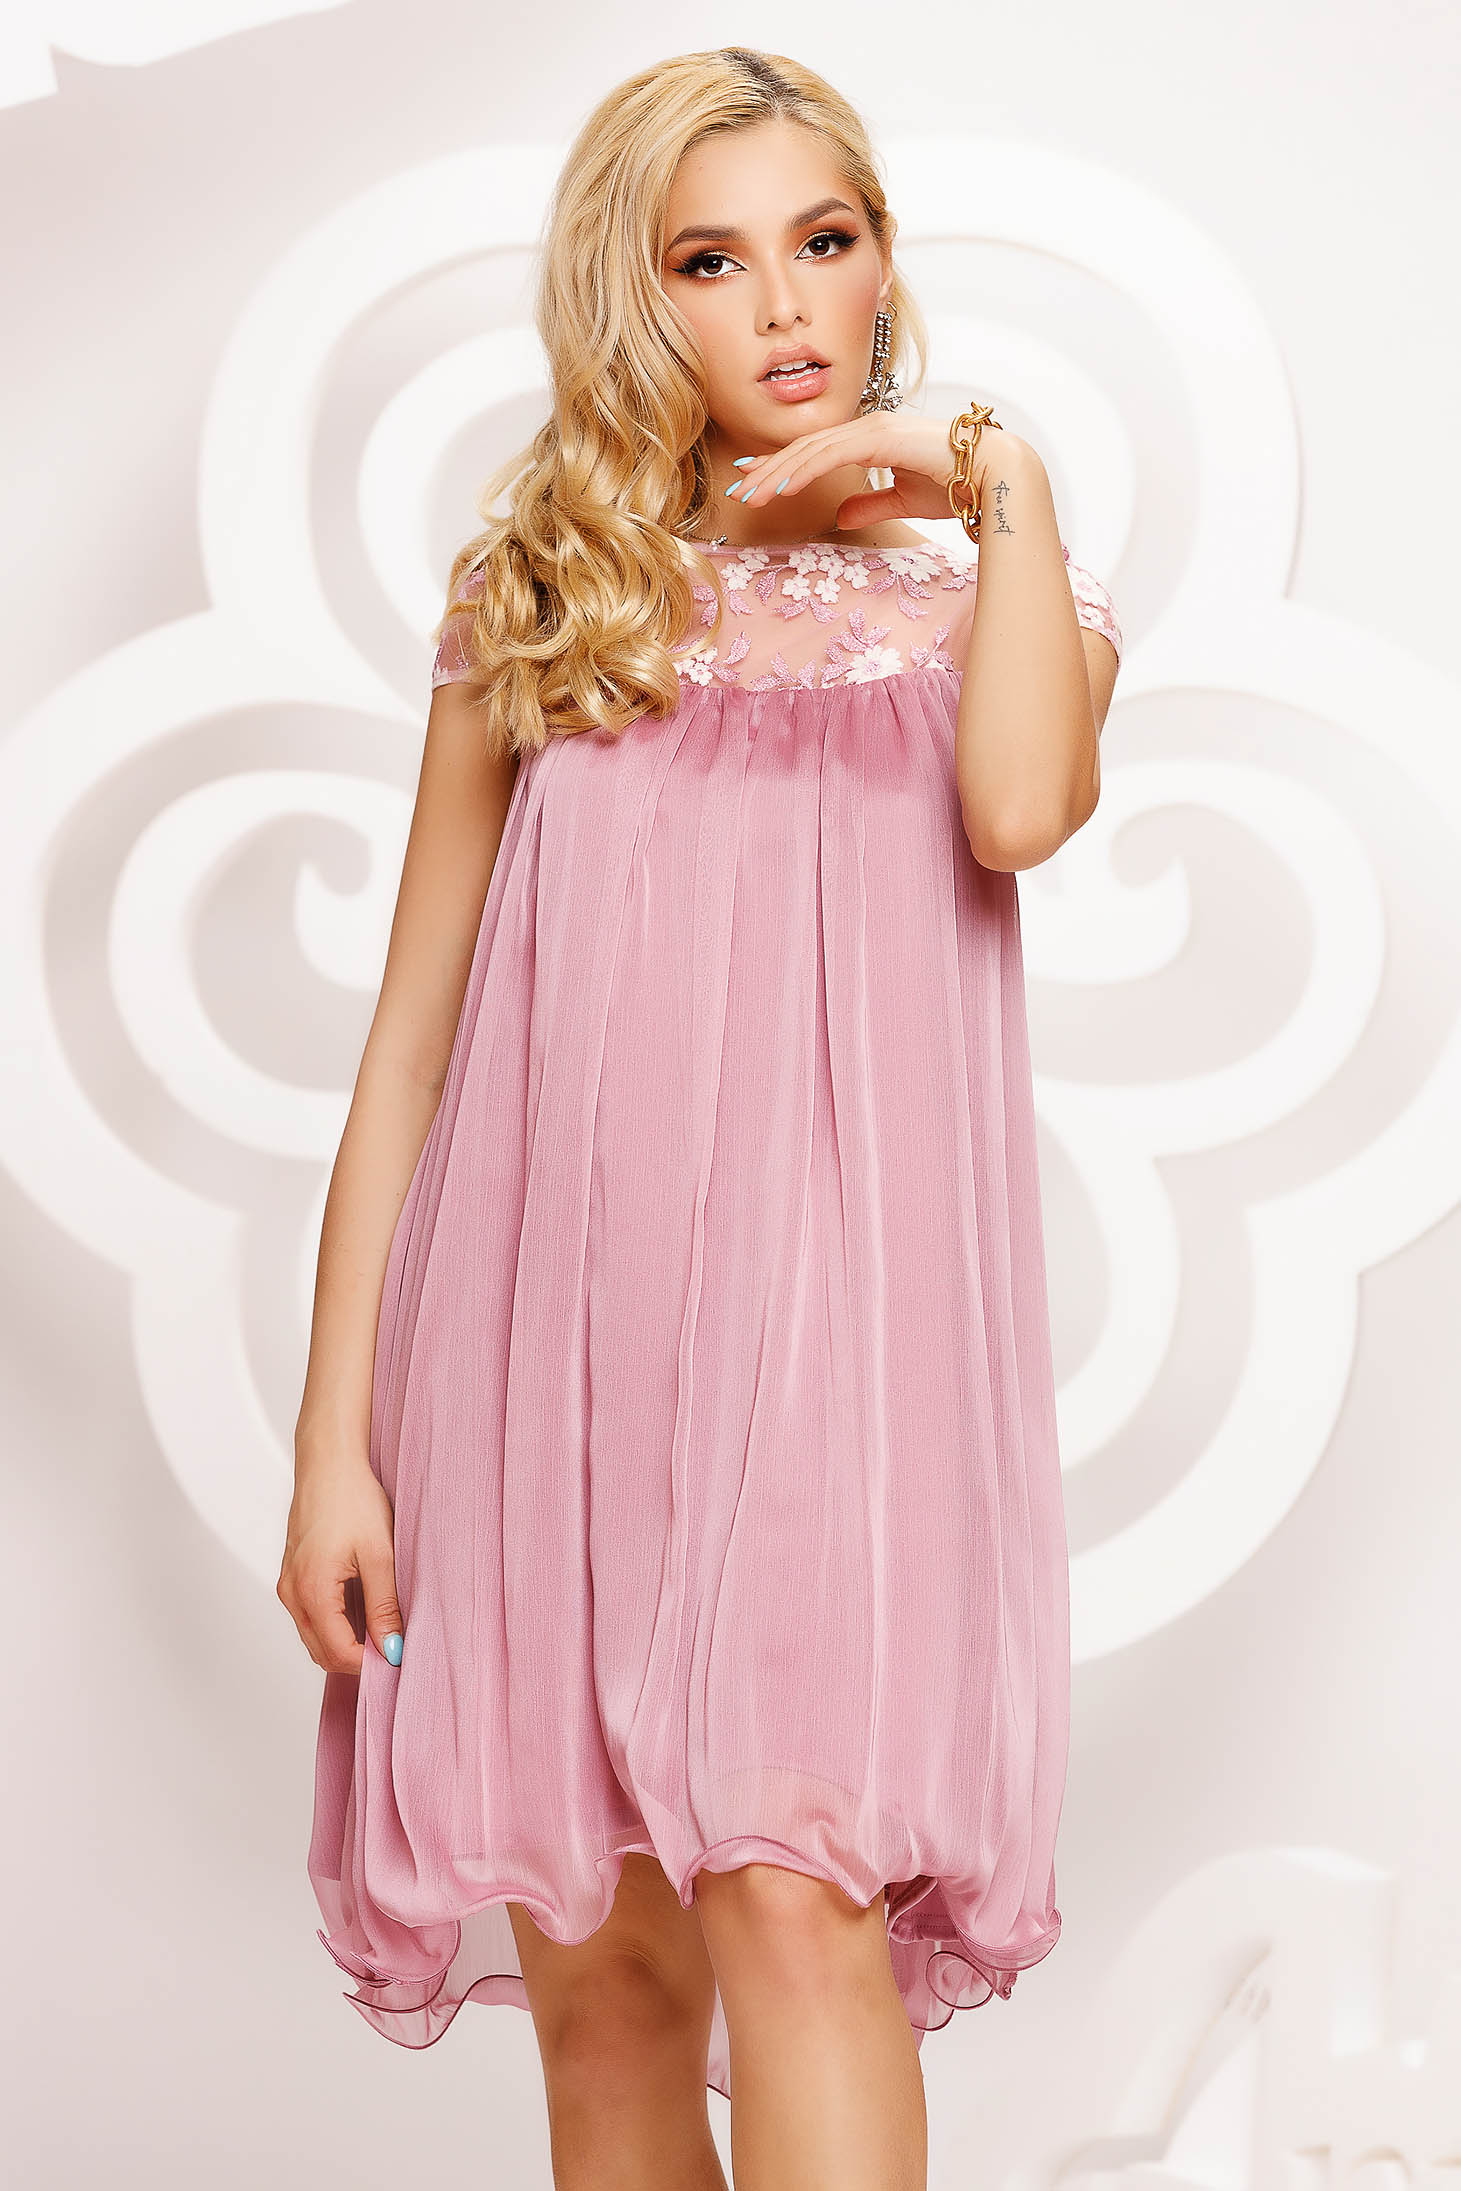 Lightpink dress from veil fabric occasional with lace details loose fit short cut